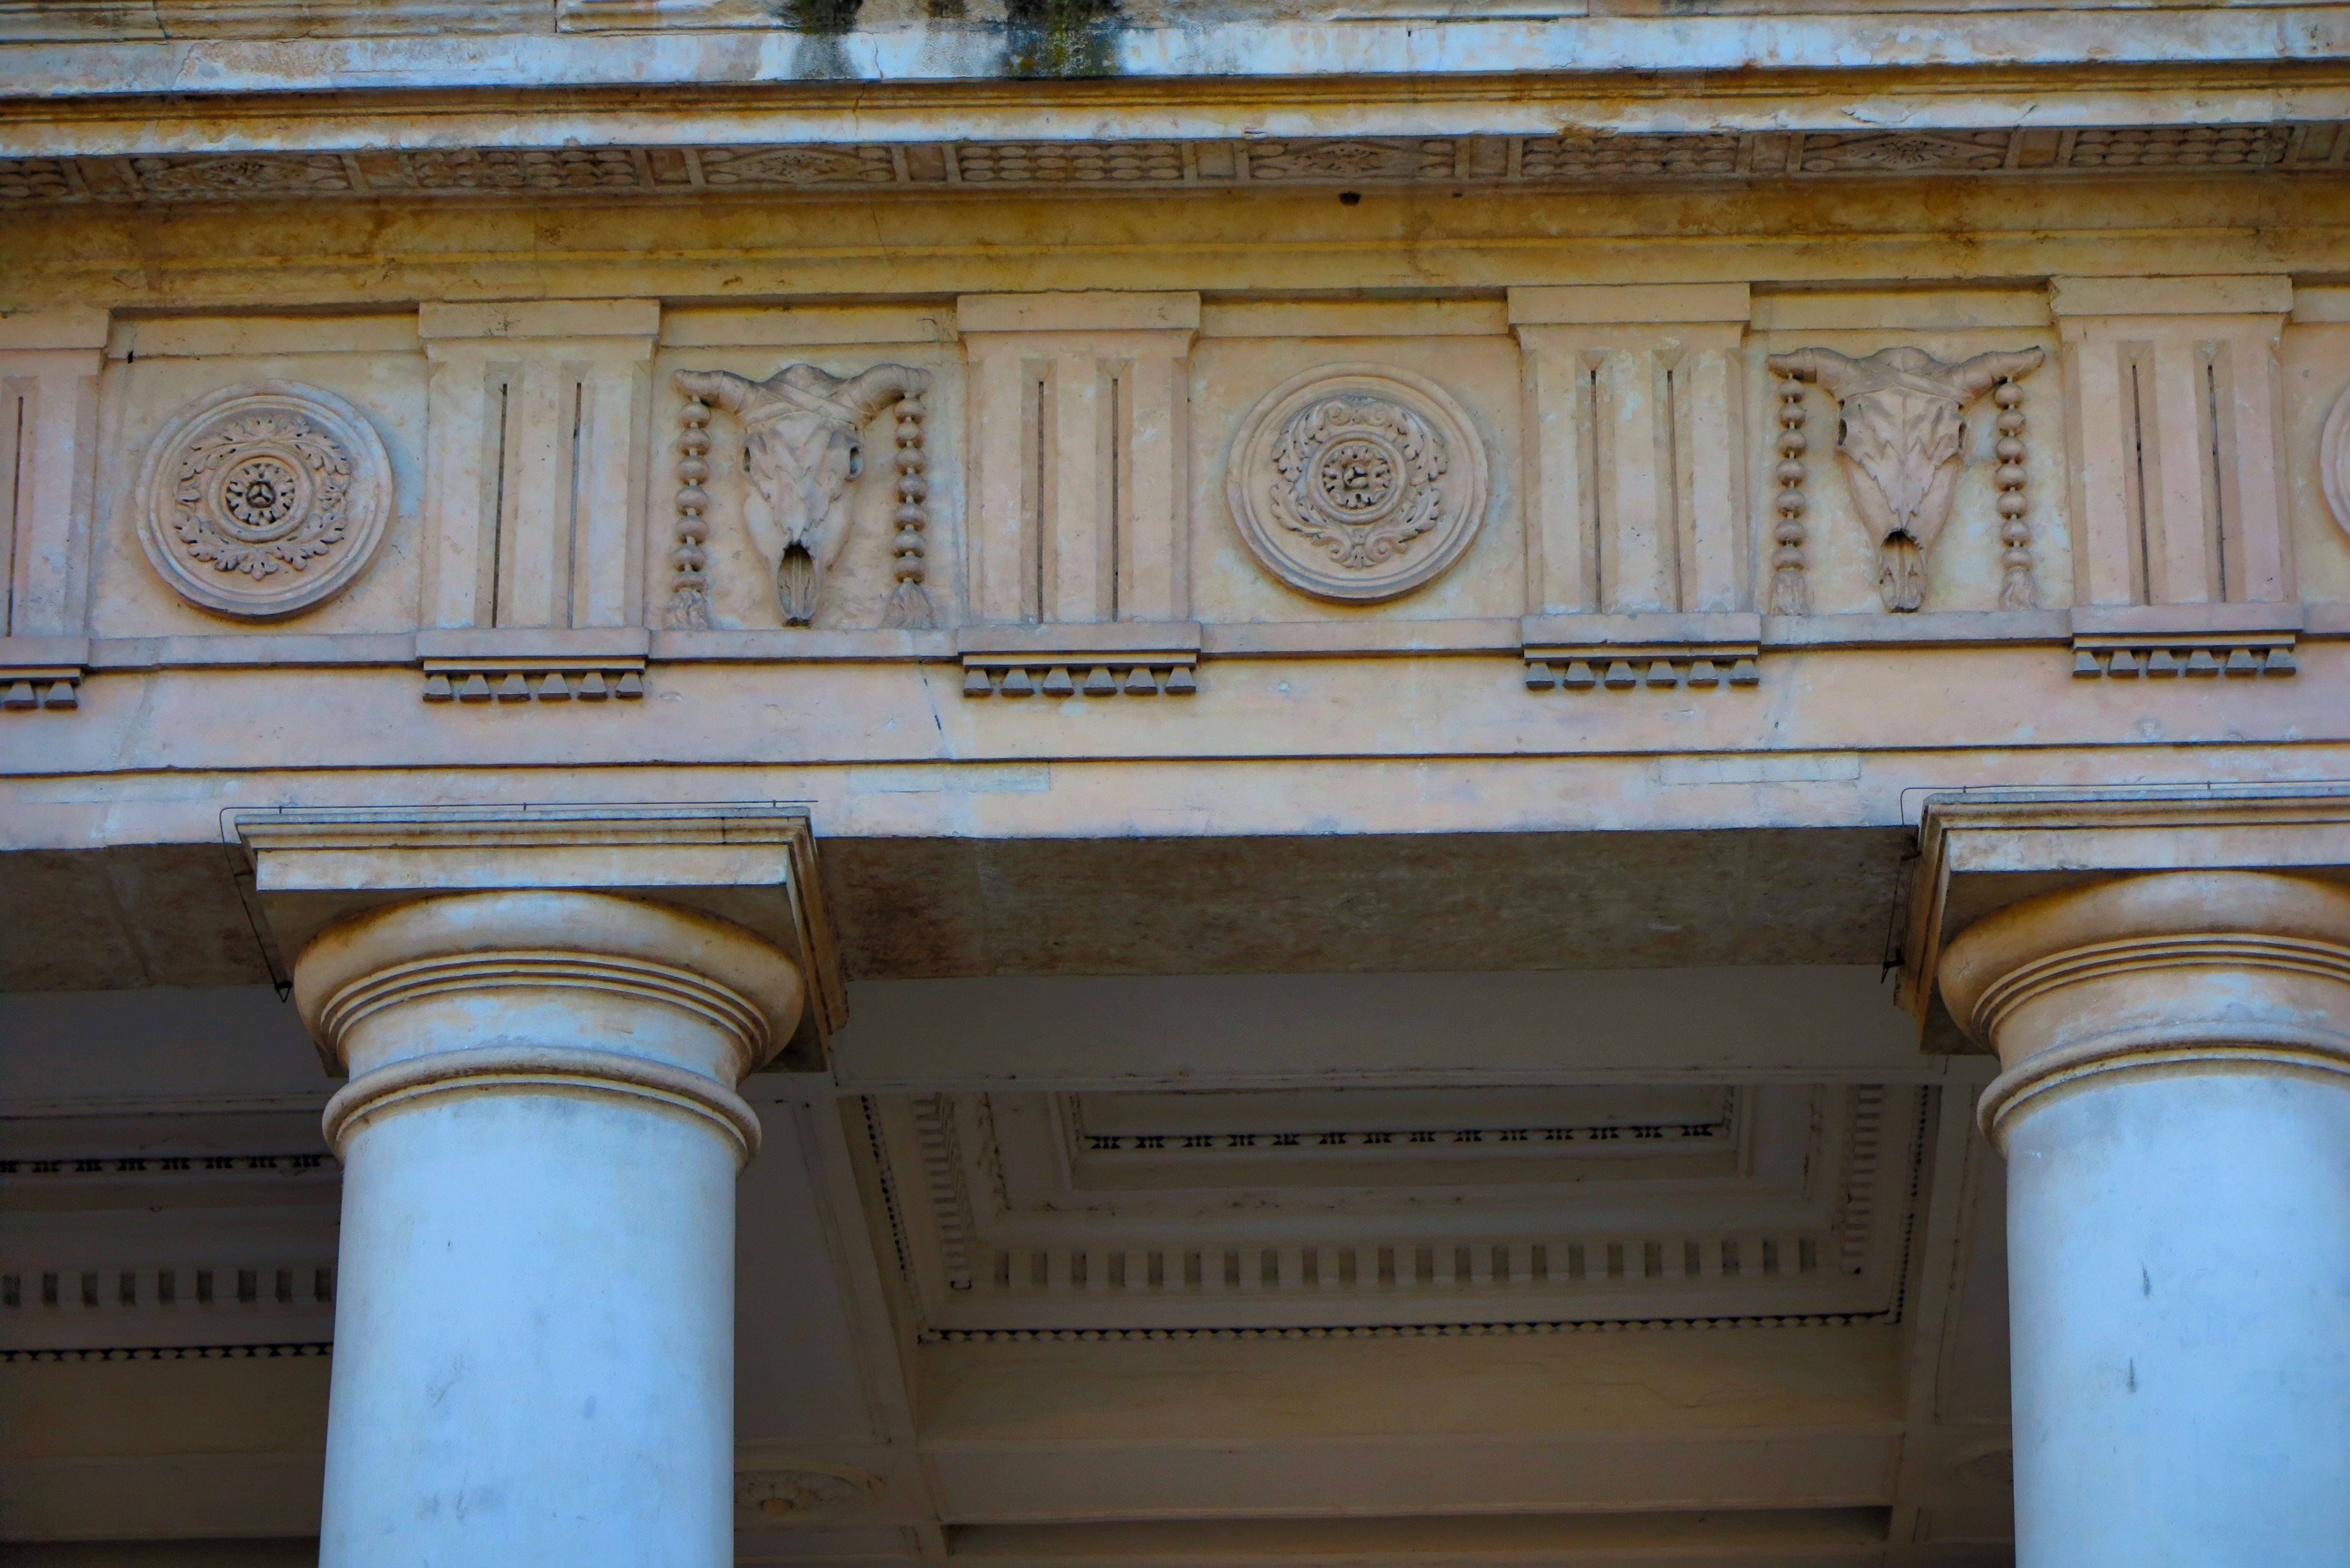 A frieze with Tuscan columns, flowers and brucaniums